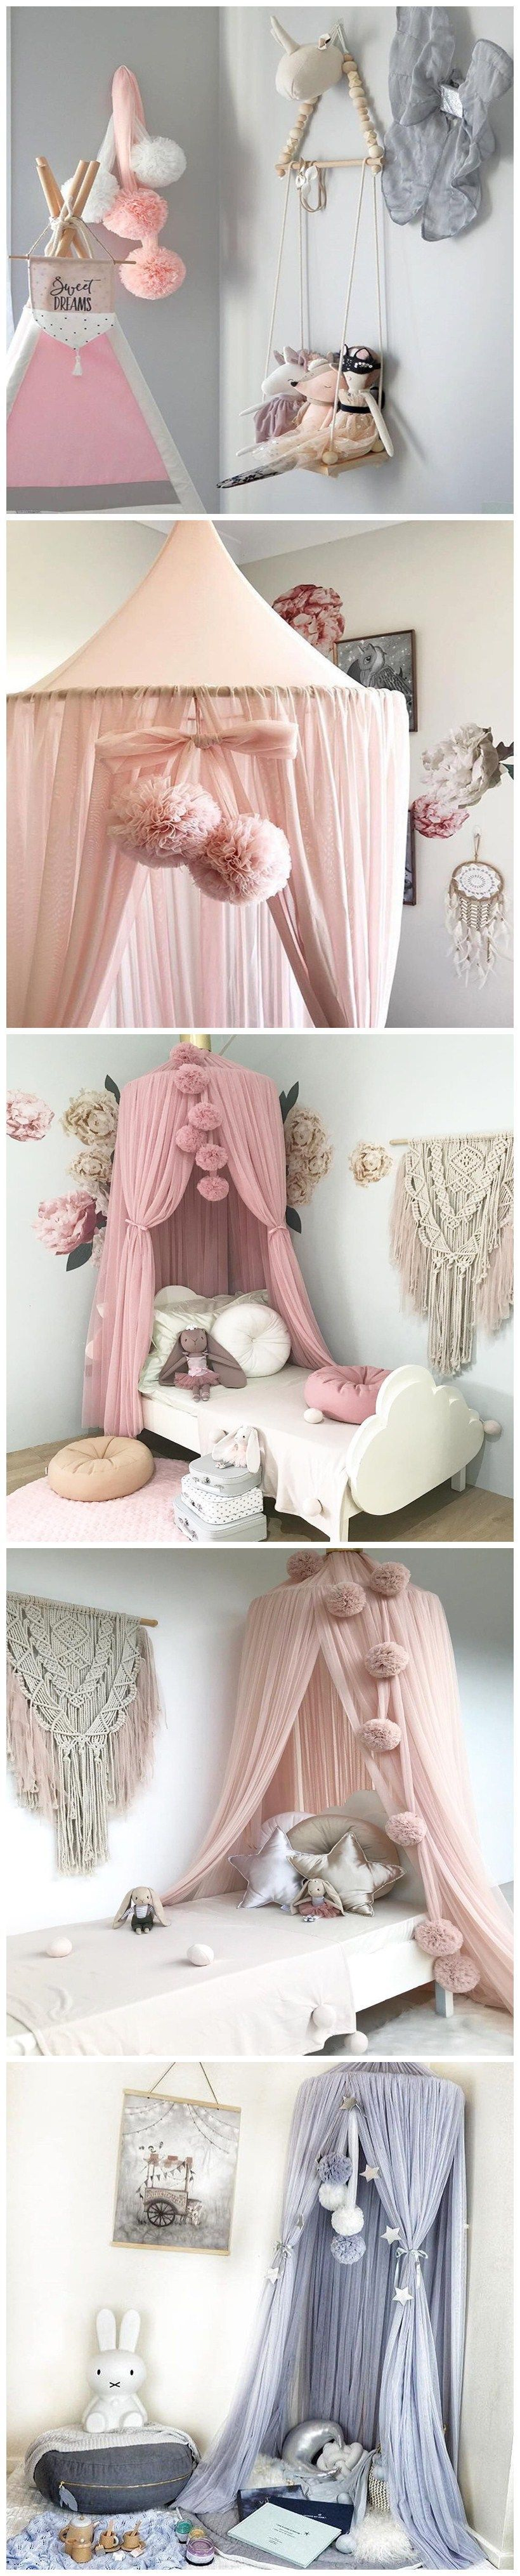 Photo of bed canopy diy, bed canopy kids,bed canopy ideas, bed canopy australia, bed cano…